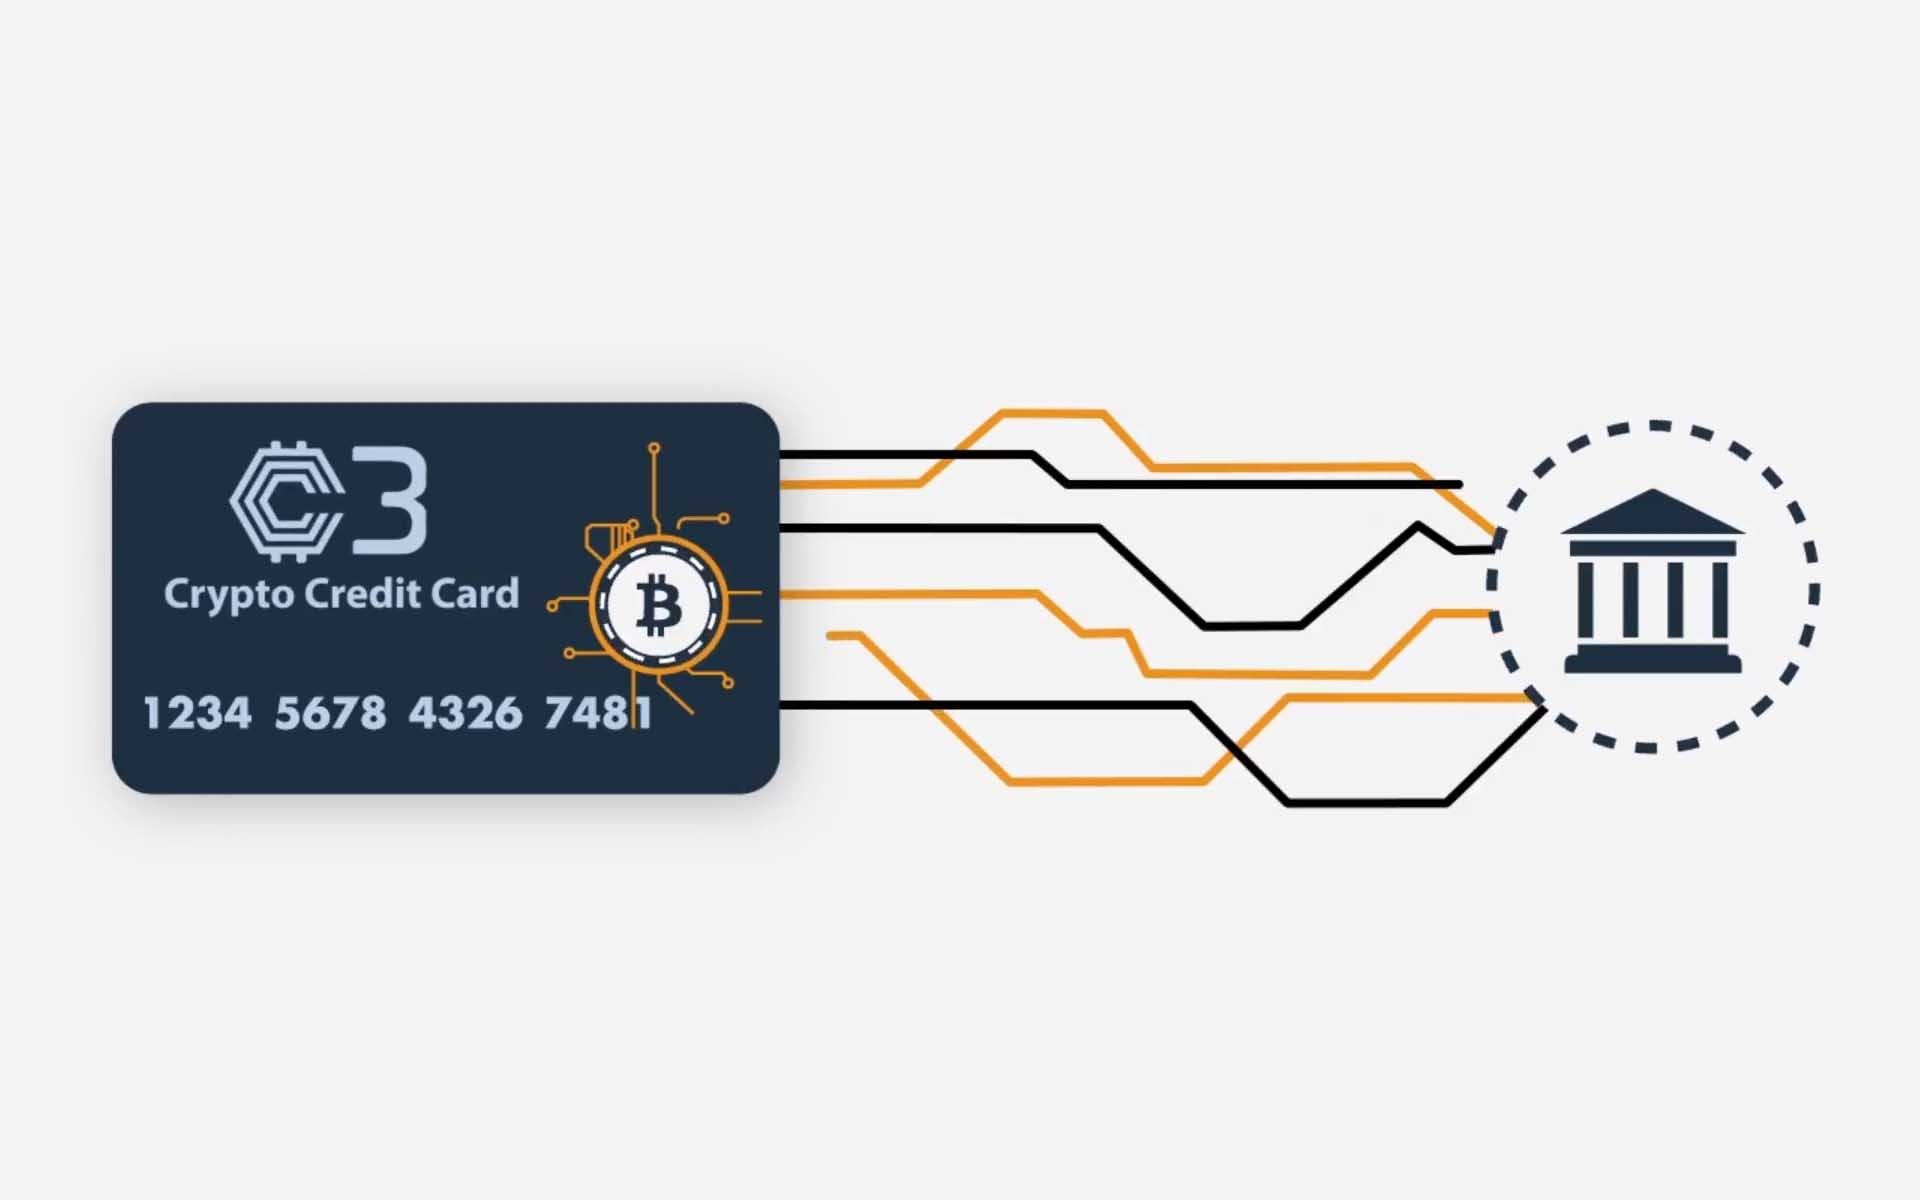 Crypto Credit Card Announces Pre-ICO, Starting November 15th